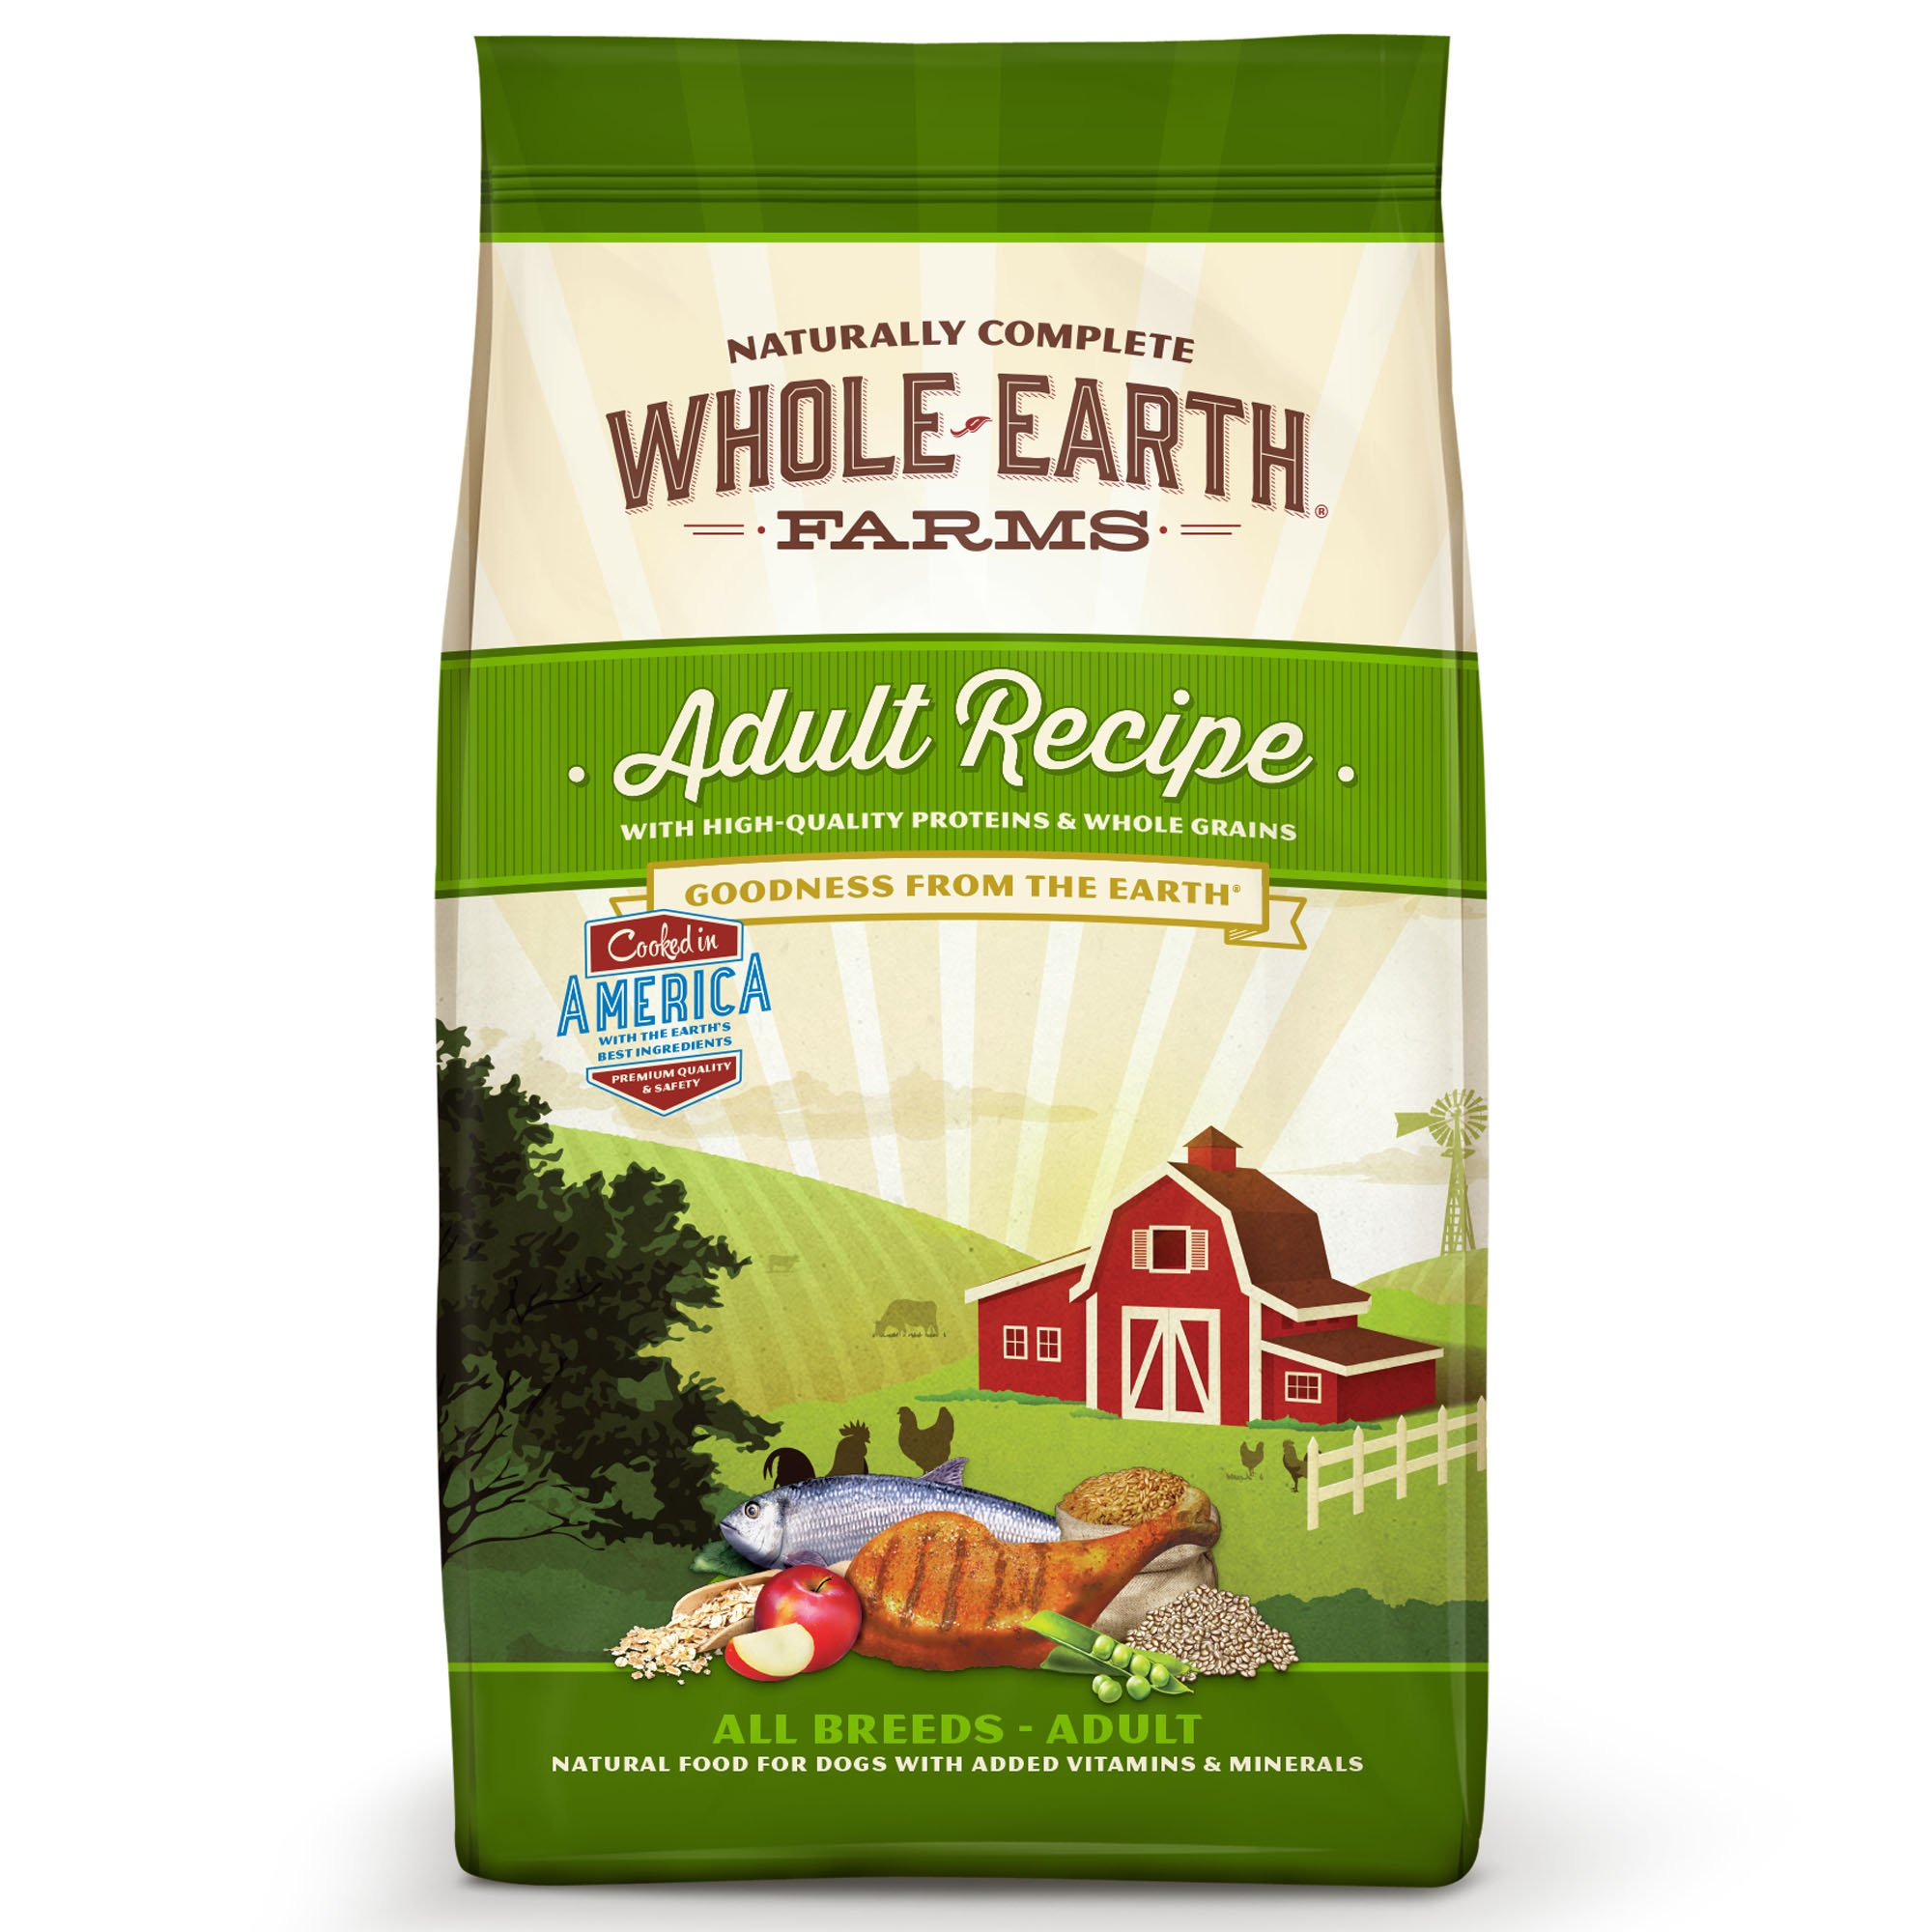 Whole Earth Farms Adult Dog Dry Food, 4 lbs.